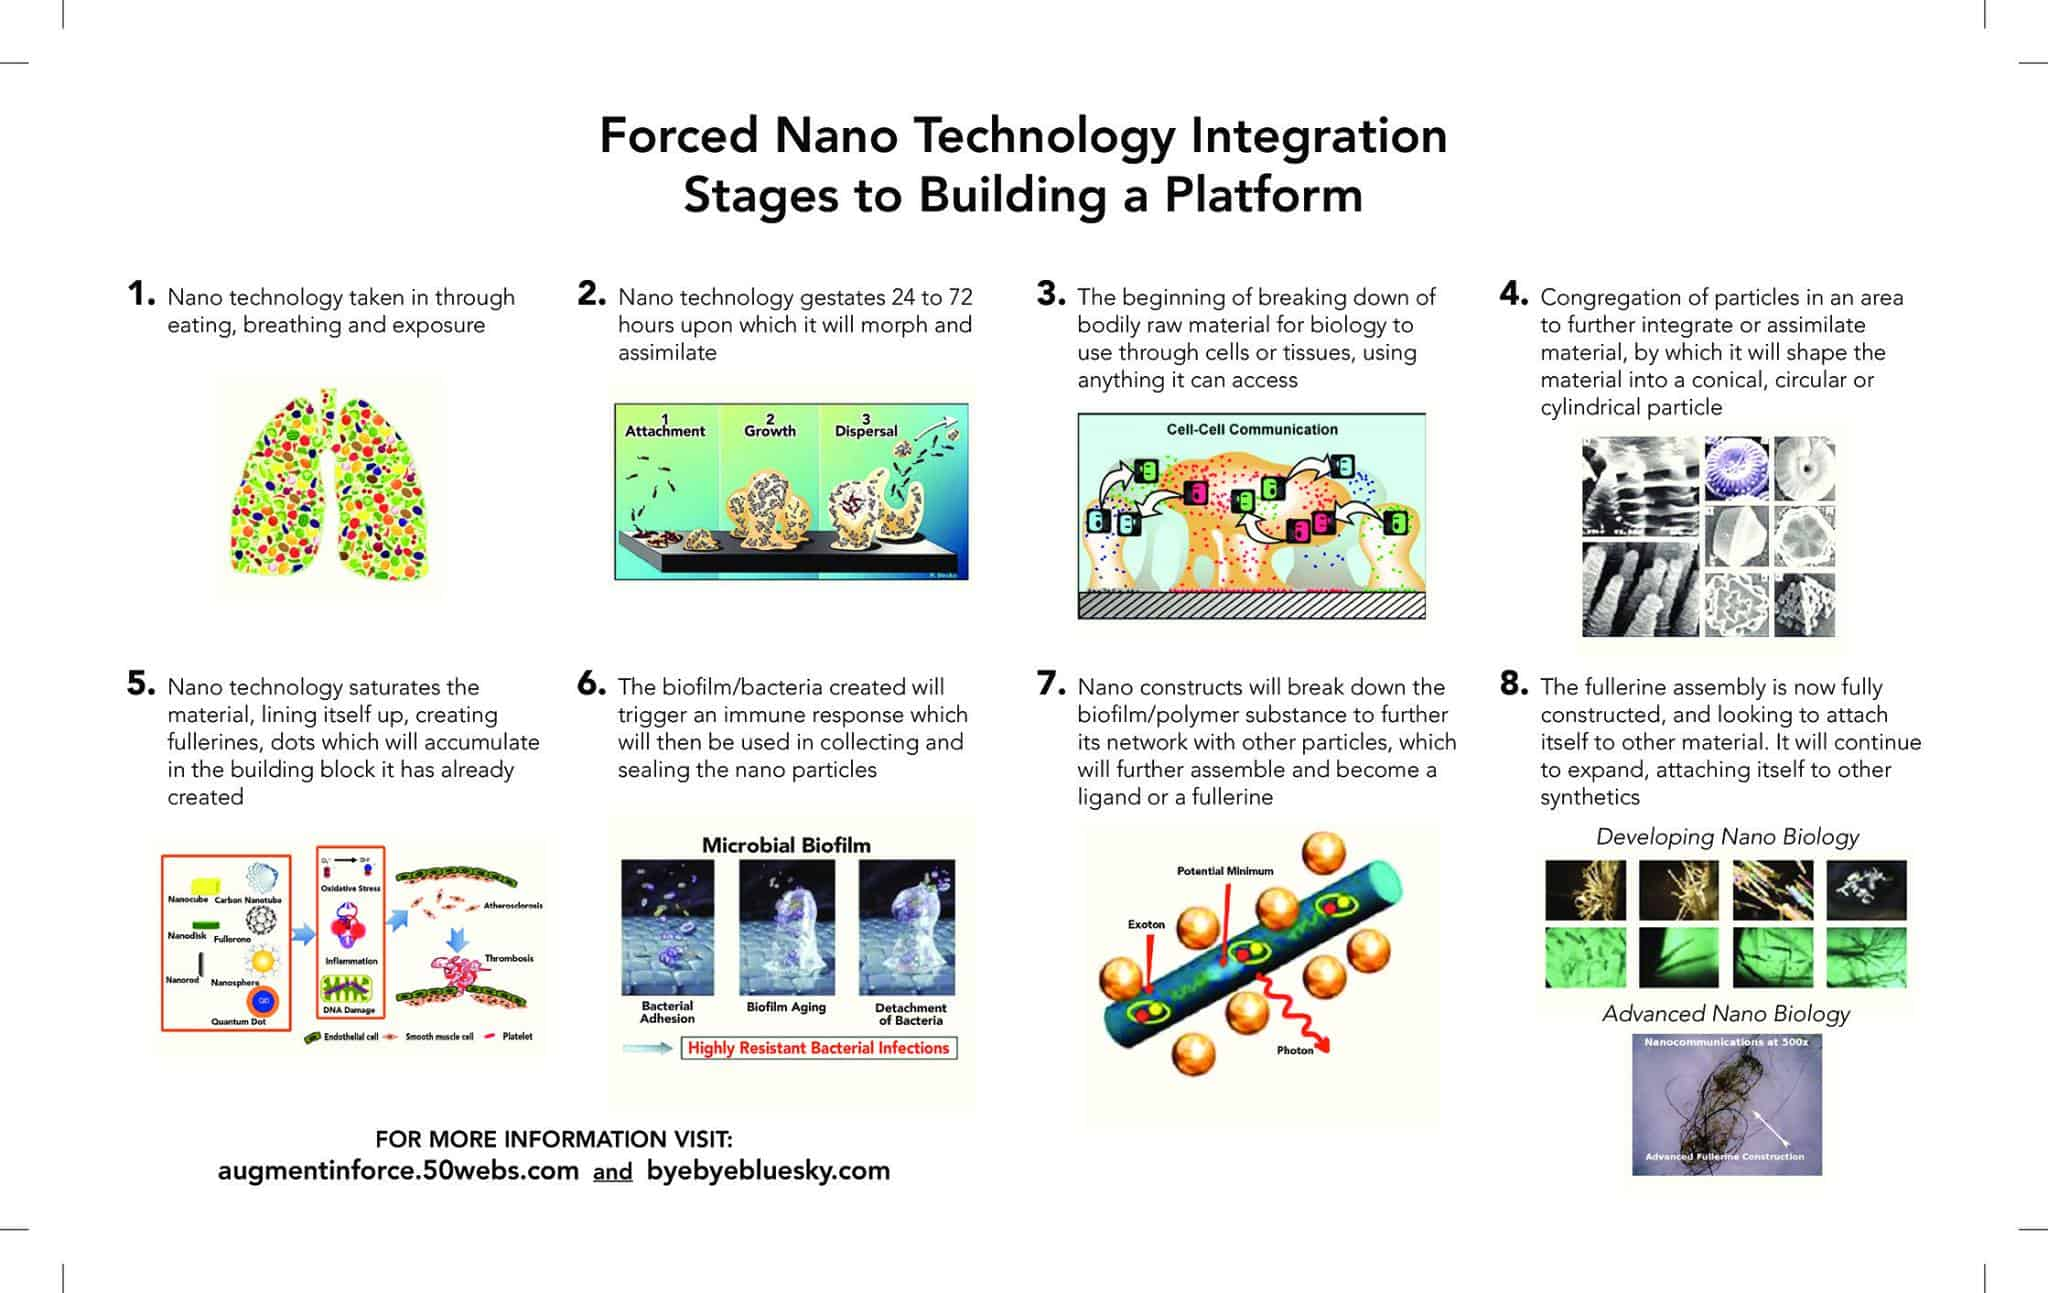 STAGES OF FORCED NANO TECHNOLOGY INTEGRATION IN OUR BODIES